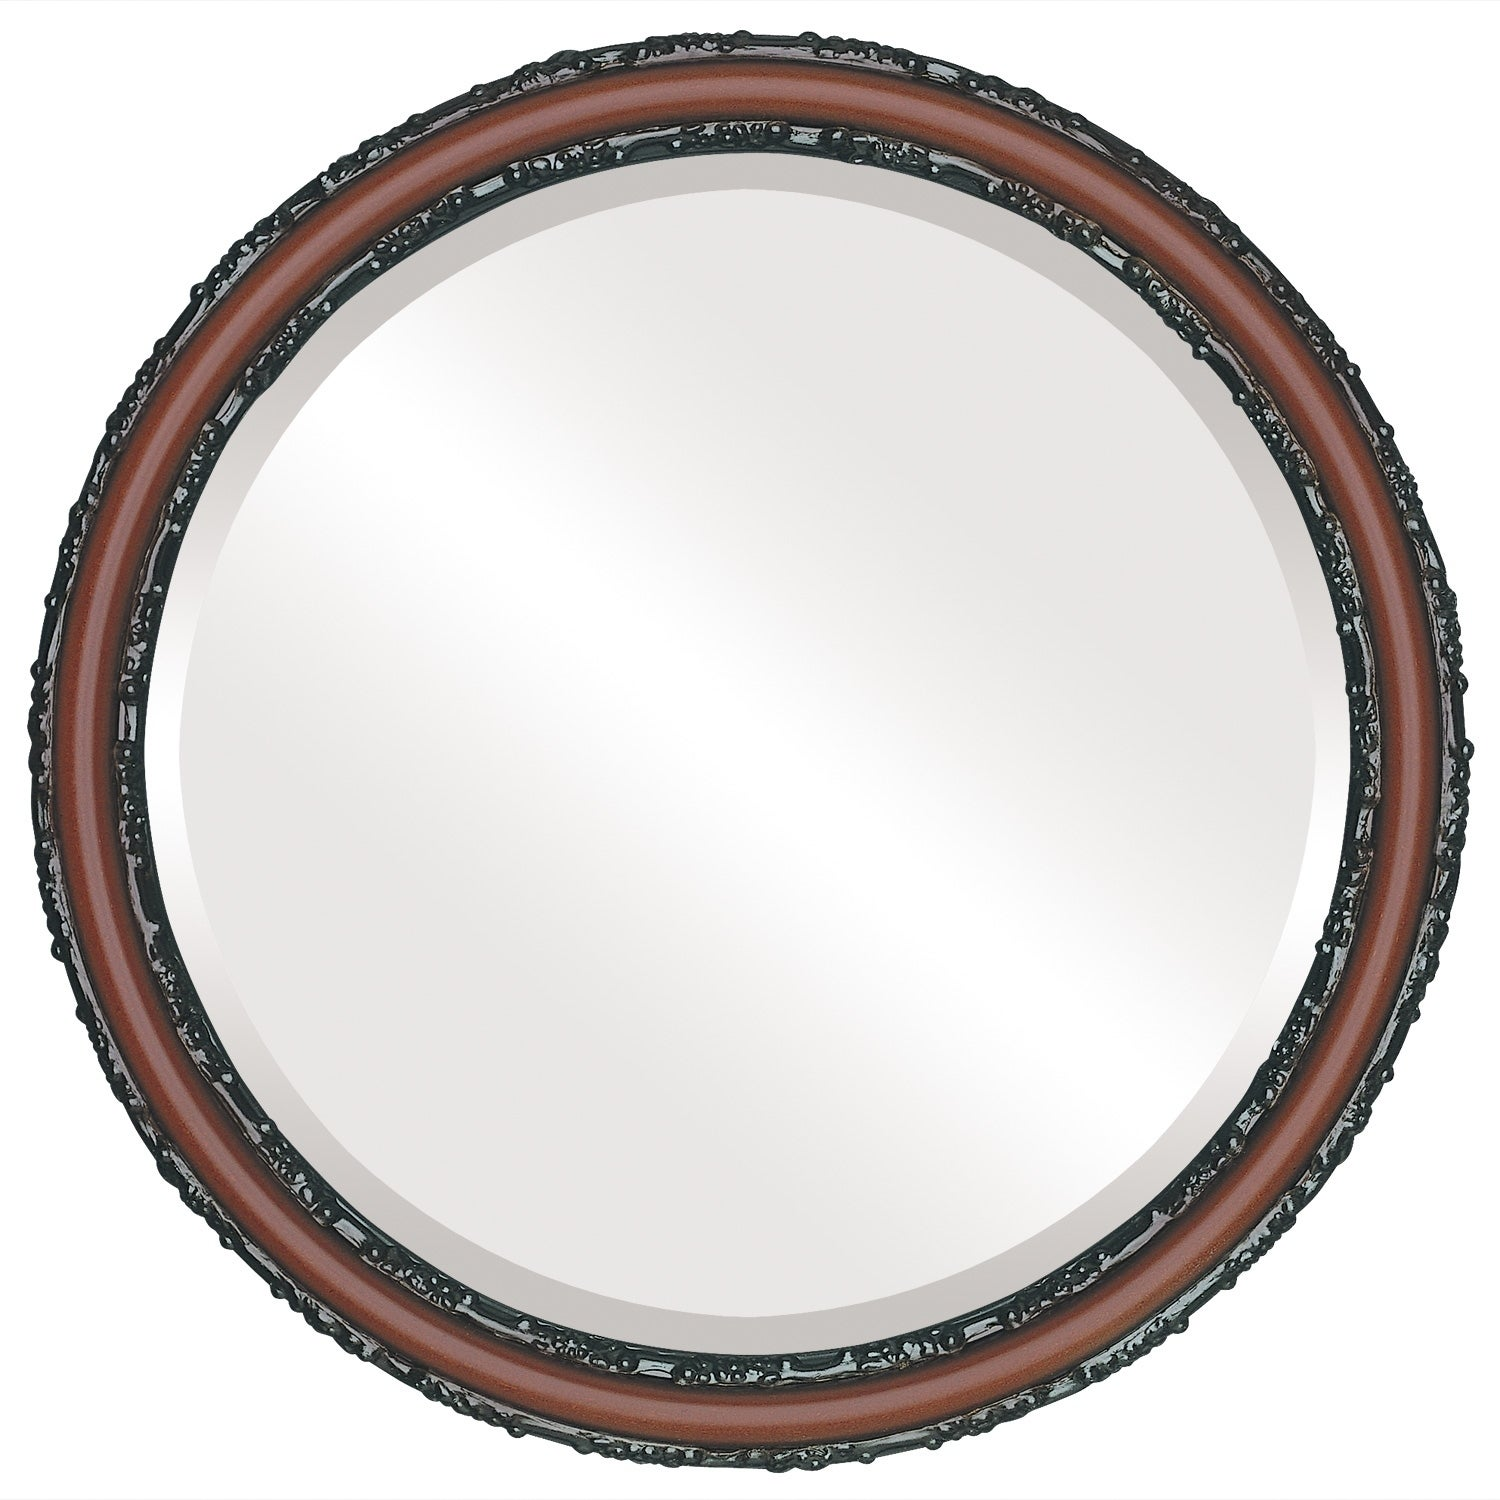 Virginia Framed Round Mirror in Rosewood - Red (19x19)